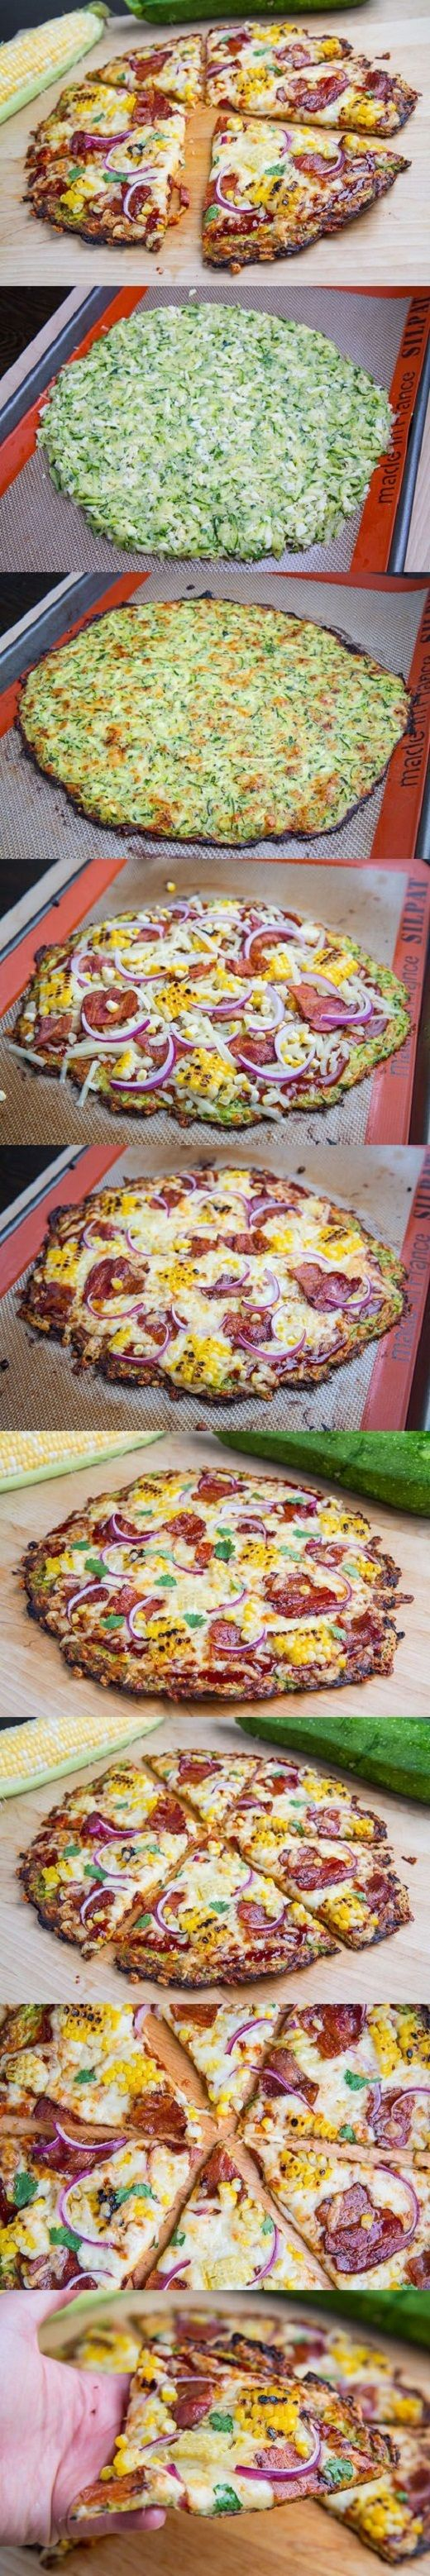 La cena- una pizza de vegetales. Calories- 240